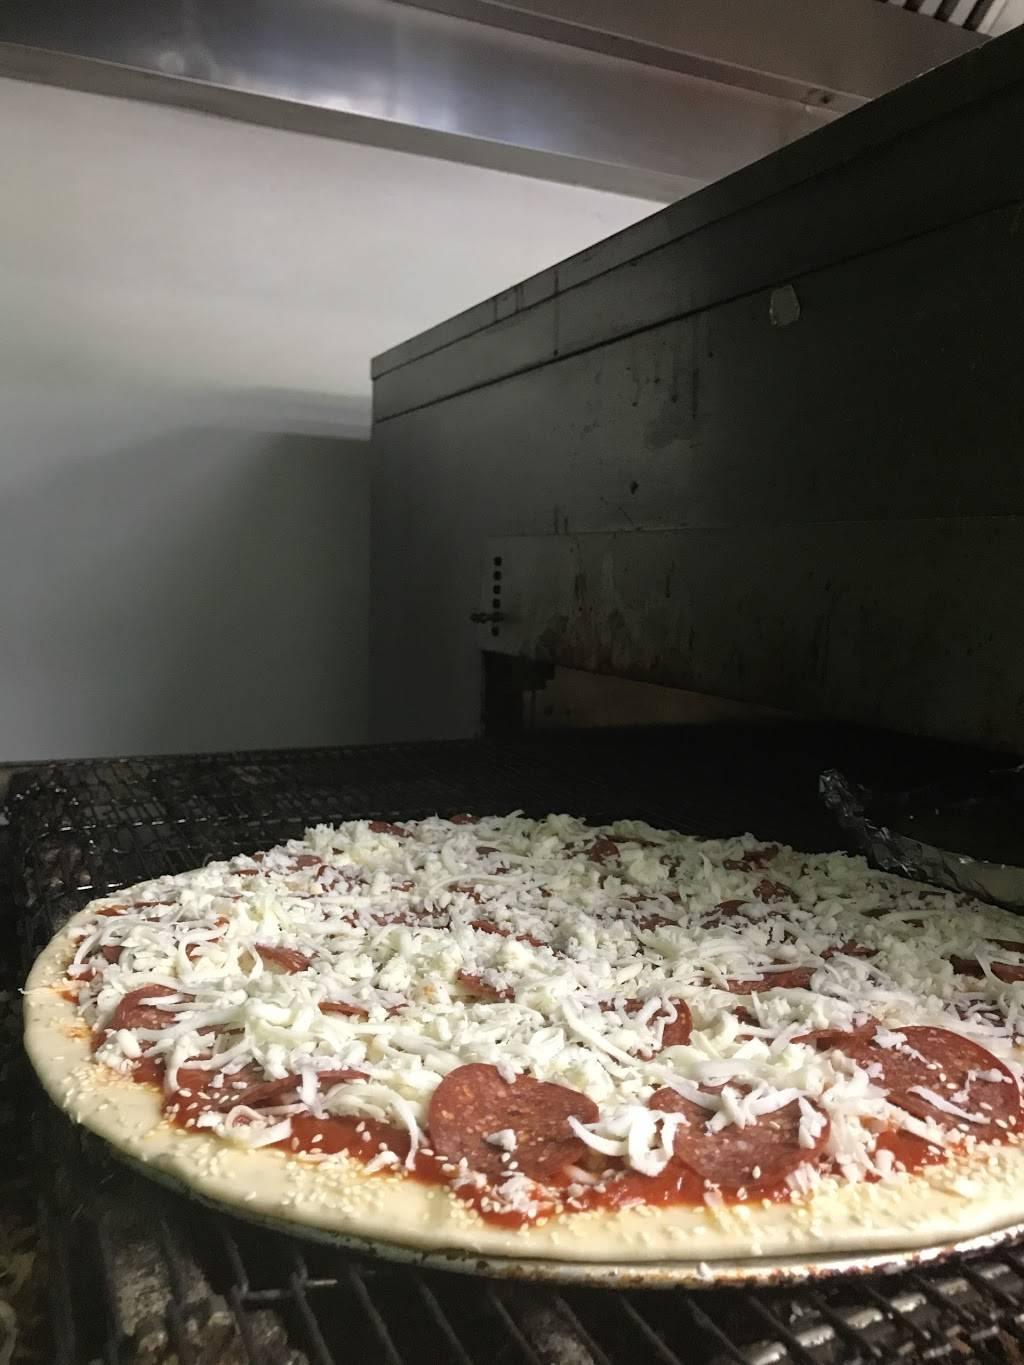 Pizza Planet | meal delivery | 717 6th St, Paso Robles, CA 93446, USA | 8052260990 OR +1 805-226-0990